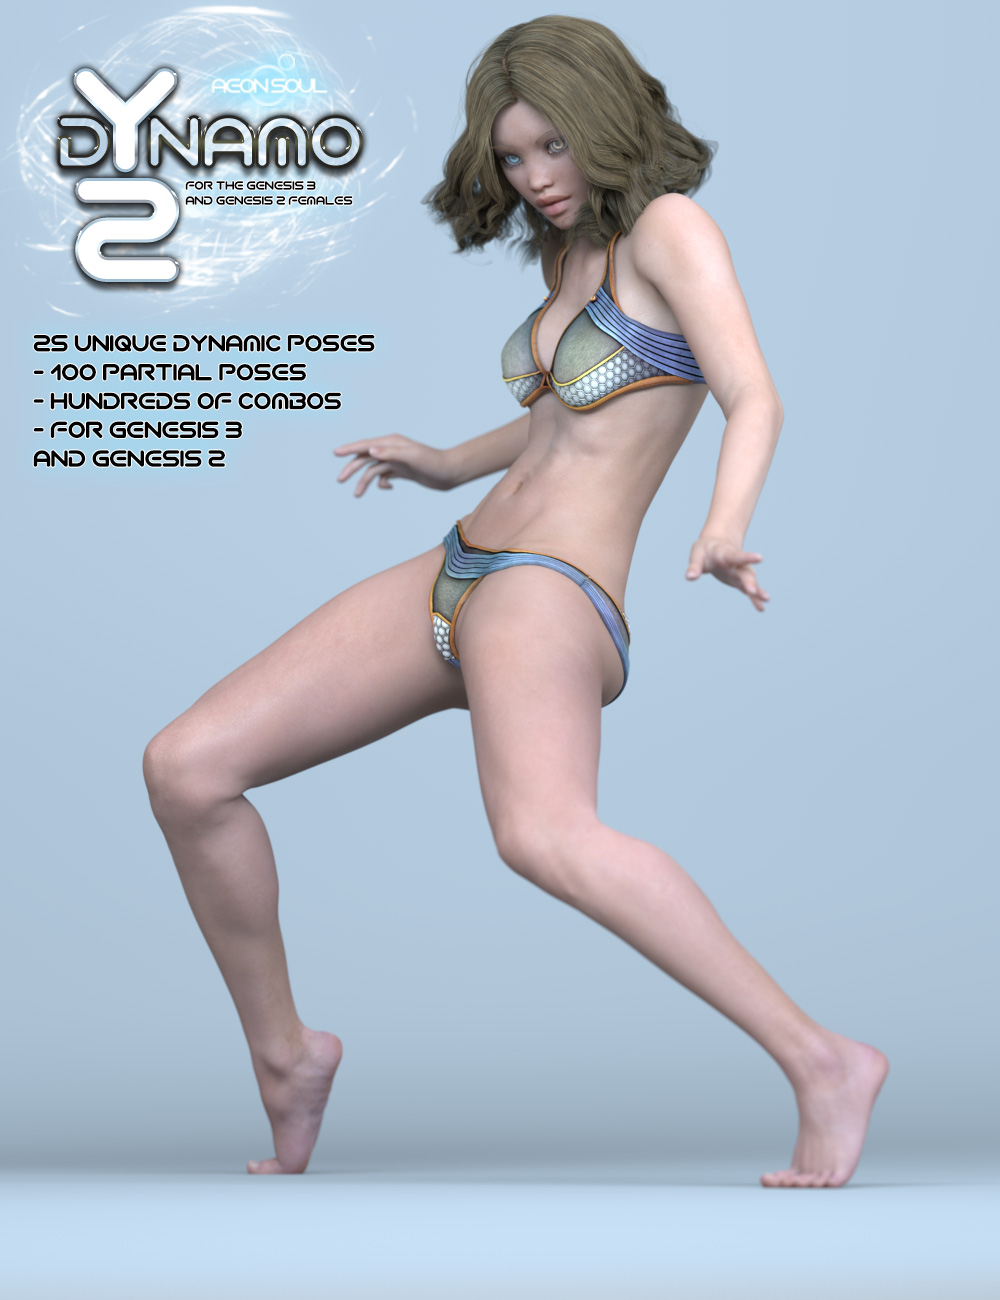 dYnamo 2 Poses for Genesis 3 and 2 Female(s) by: Aeon Soul, 3D Models by Daz 3D